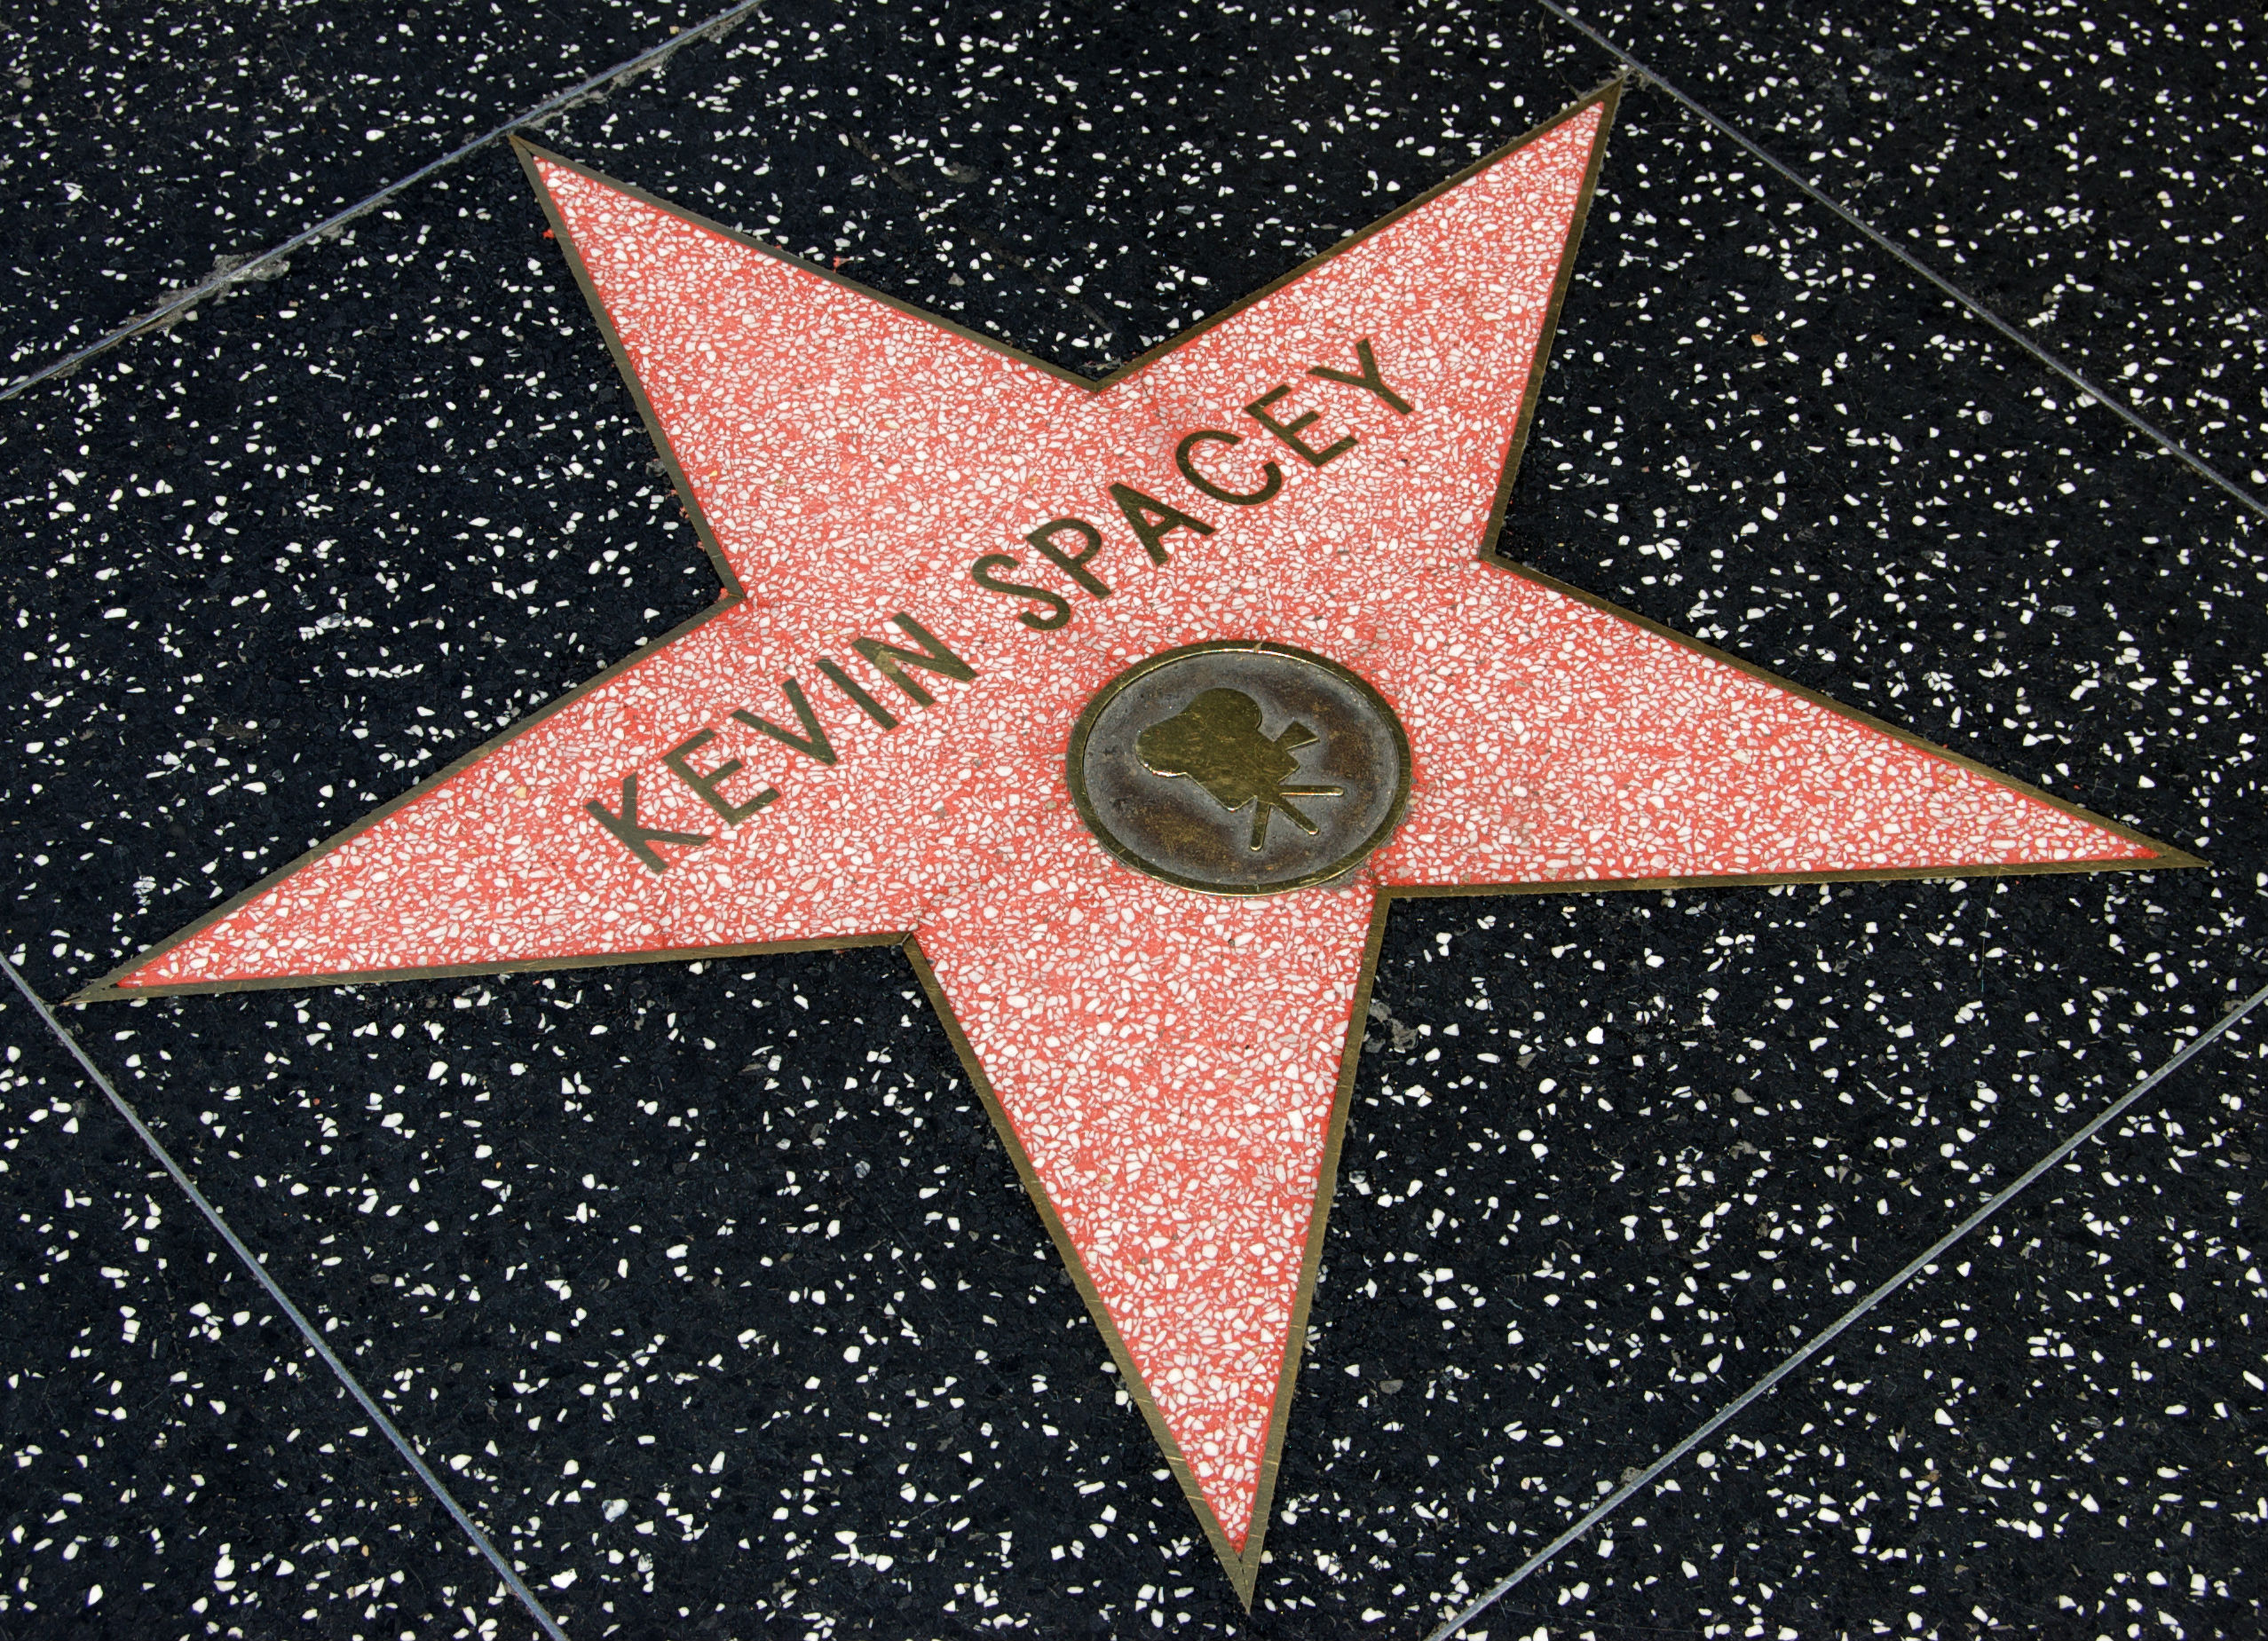 Kevin-Spaceys-star-on-Hollywoods-Walk-of-Fame